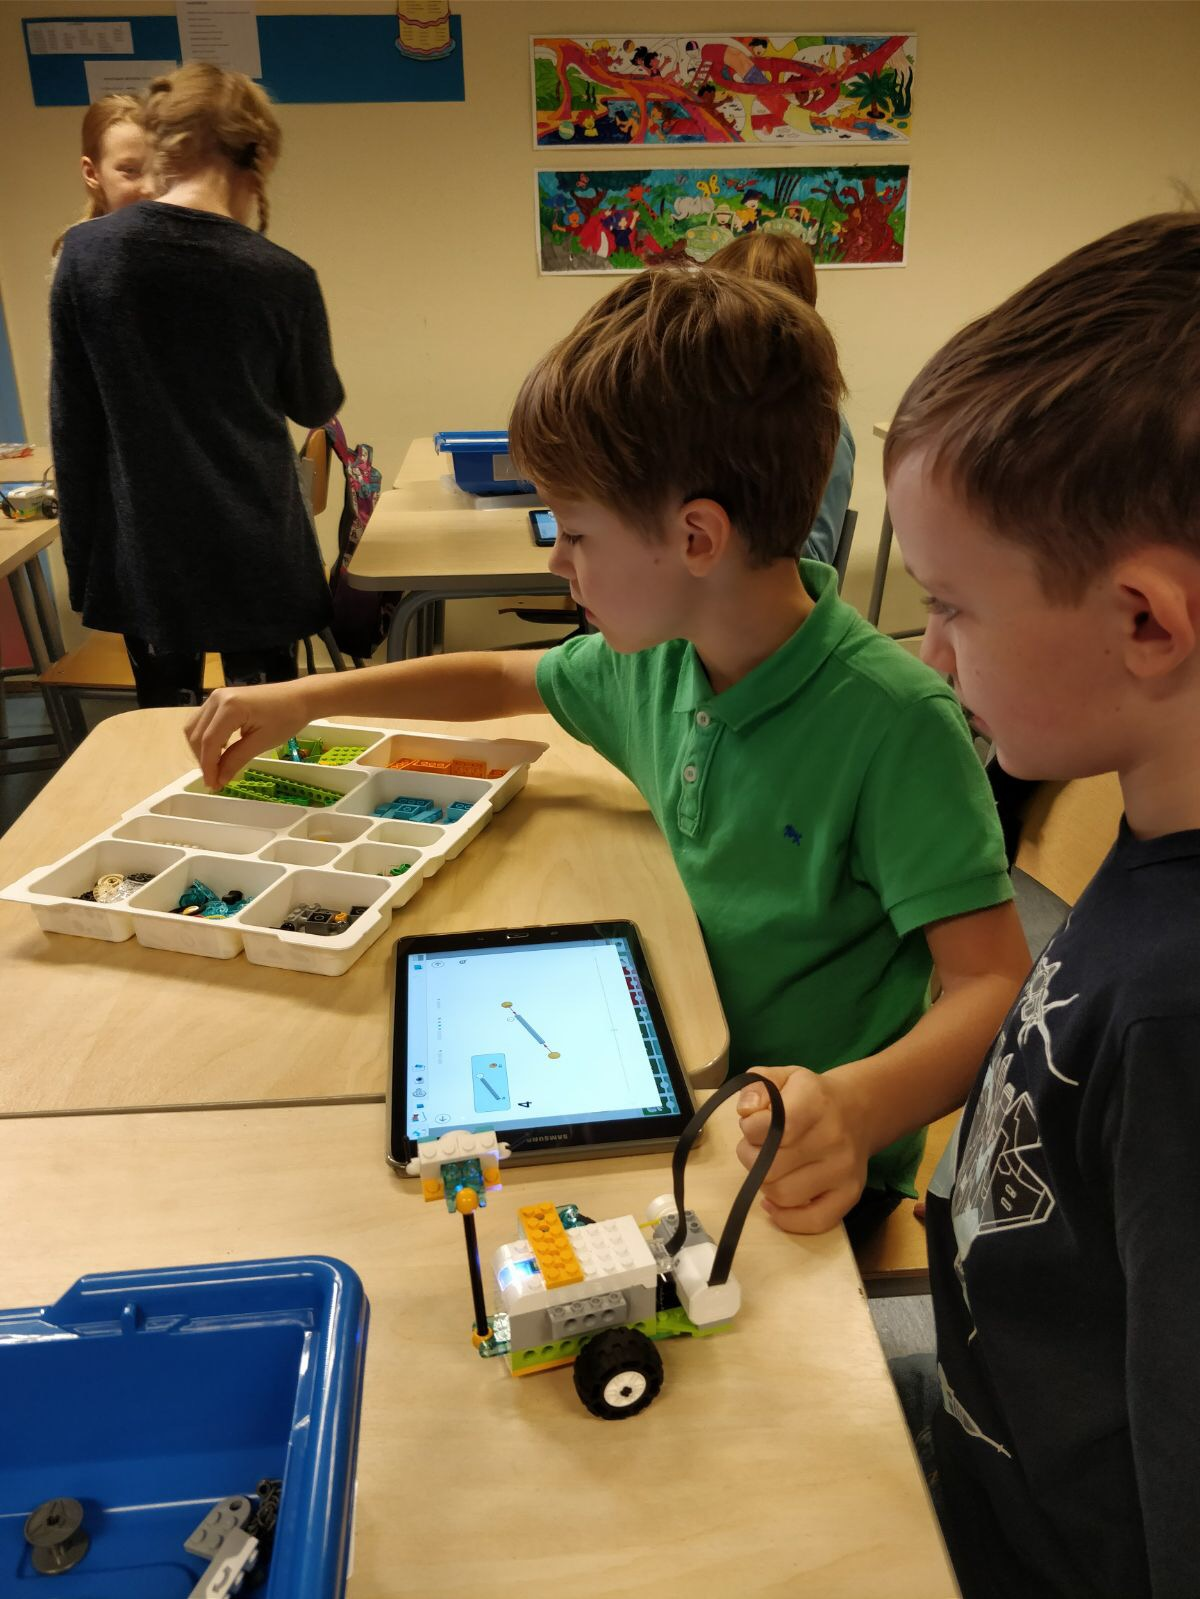 "Play is part of learning - The students get to fix the Lego robotics together, and learnt to use the iPad to control the robots. ""From a young age, they already learn how to do these things. They will probably be very technologically advanced and innovative when they reach 21 years old,"" he said. For Estonians, play is part of learning. Joshua said that the students choose the activities that they want to do in class at their own discretion."